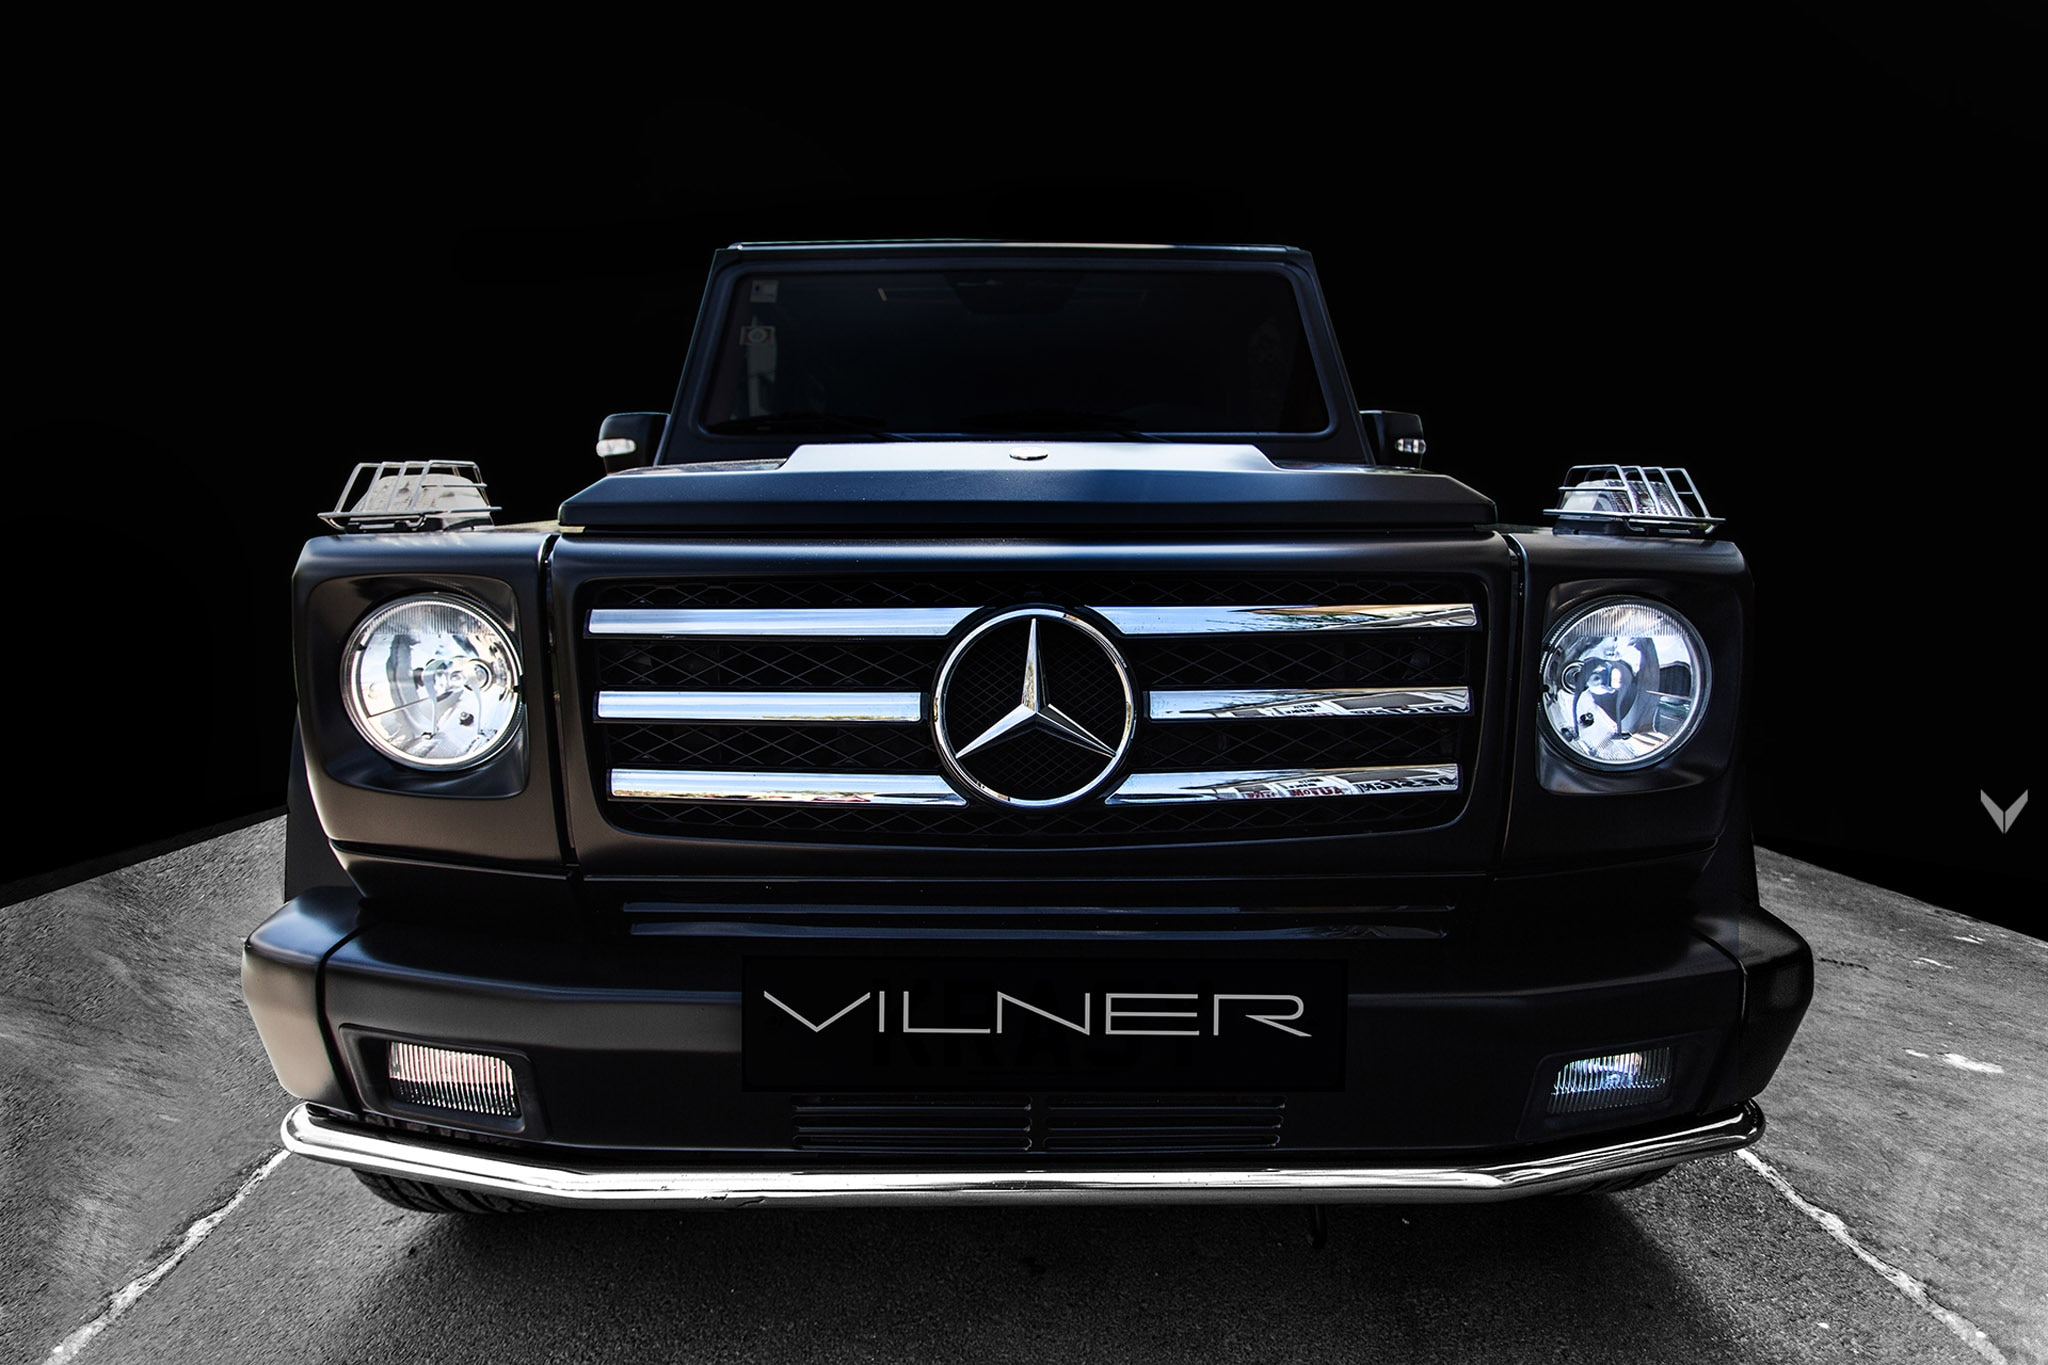 2005 Mercedes Benz G55 Amg Gets New Game By Vilner